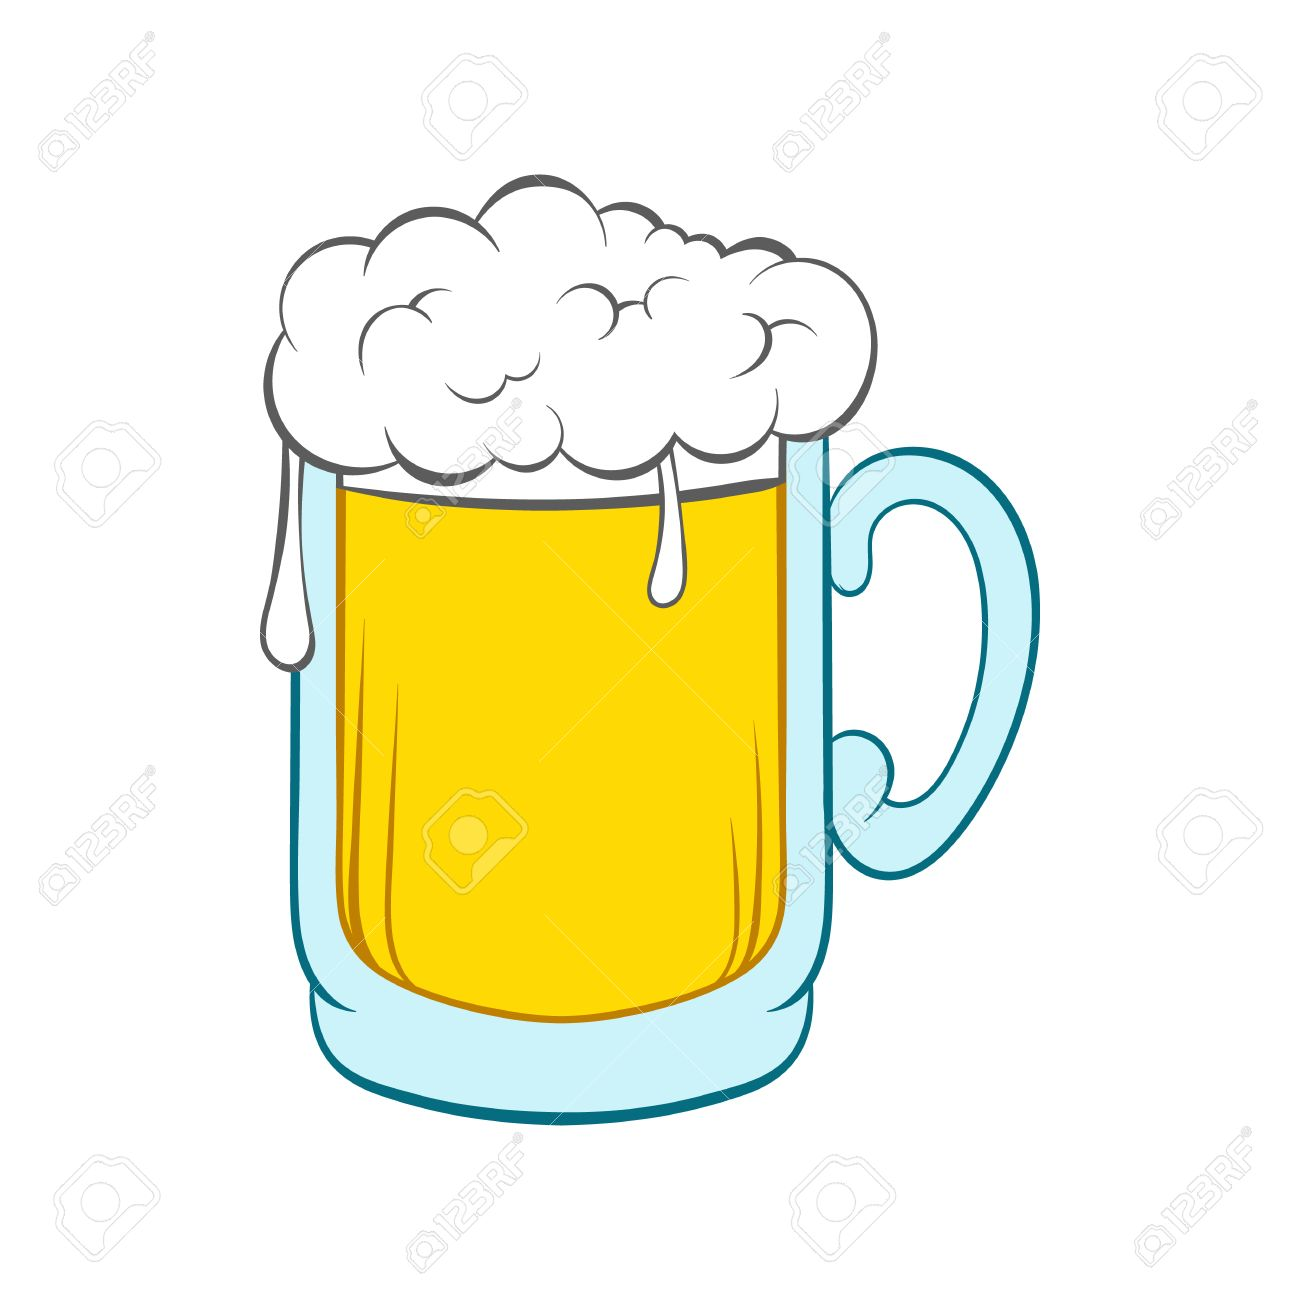 Beer mug icon in cartoon style on a white background - 57980226